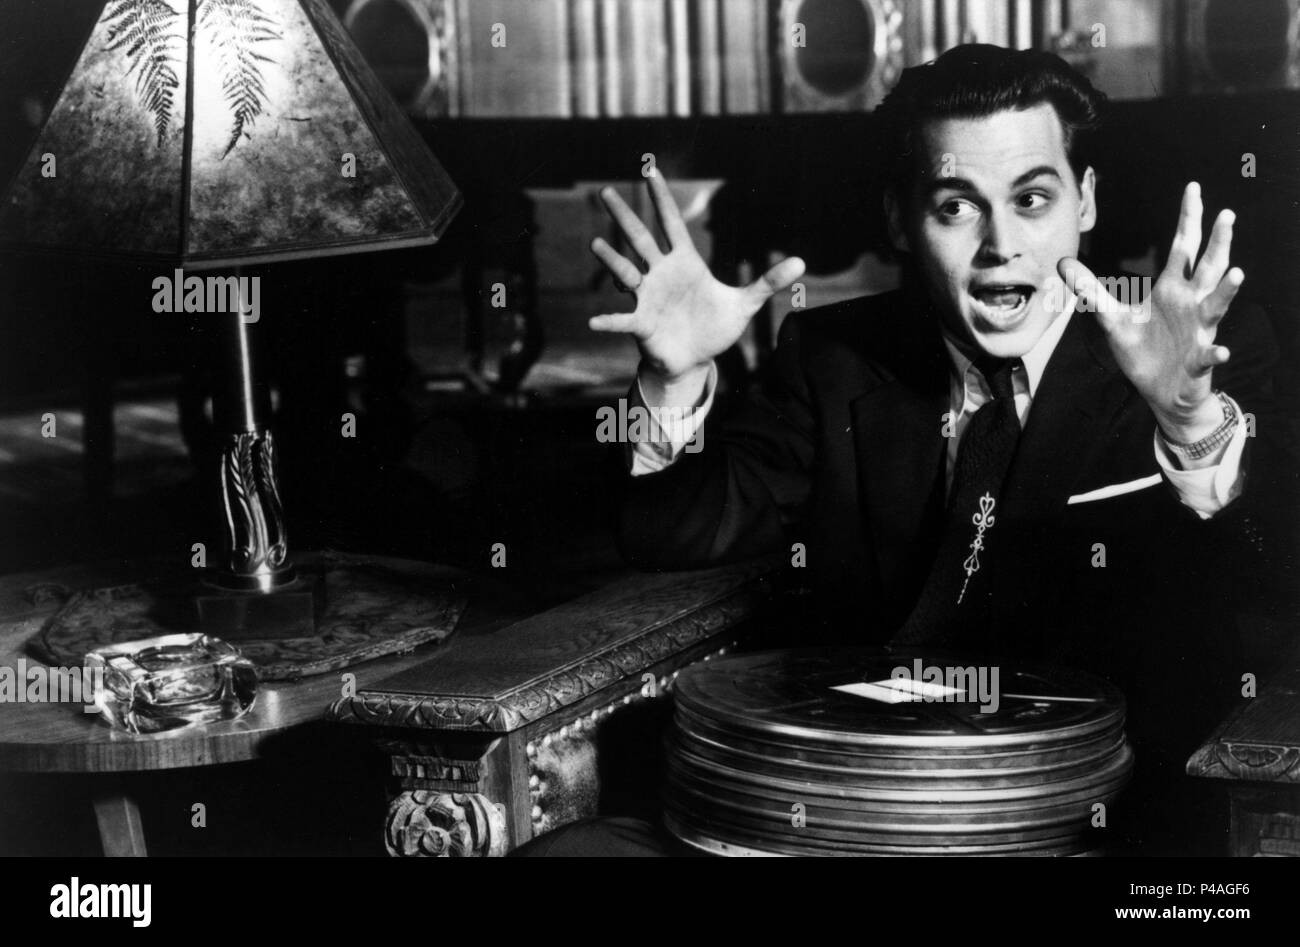 Original Film Title: ED WOOD.  English Title: ED WOOD.  Film Director: TIM BURTON.  Year: 1994.  Stars: JOHNNY DEPP. Credit: TOUCHSTONE PICTURES / Album - Stock Image